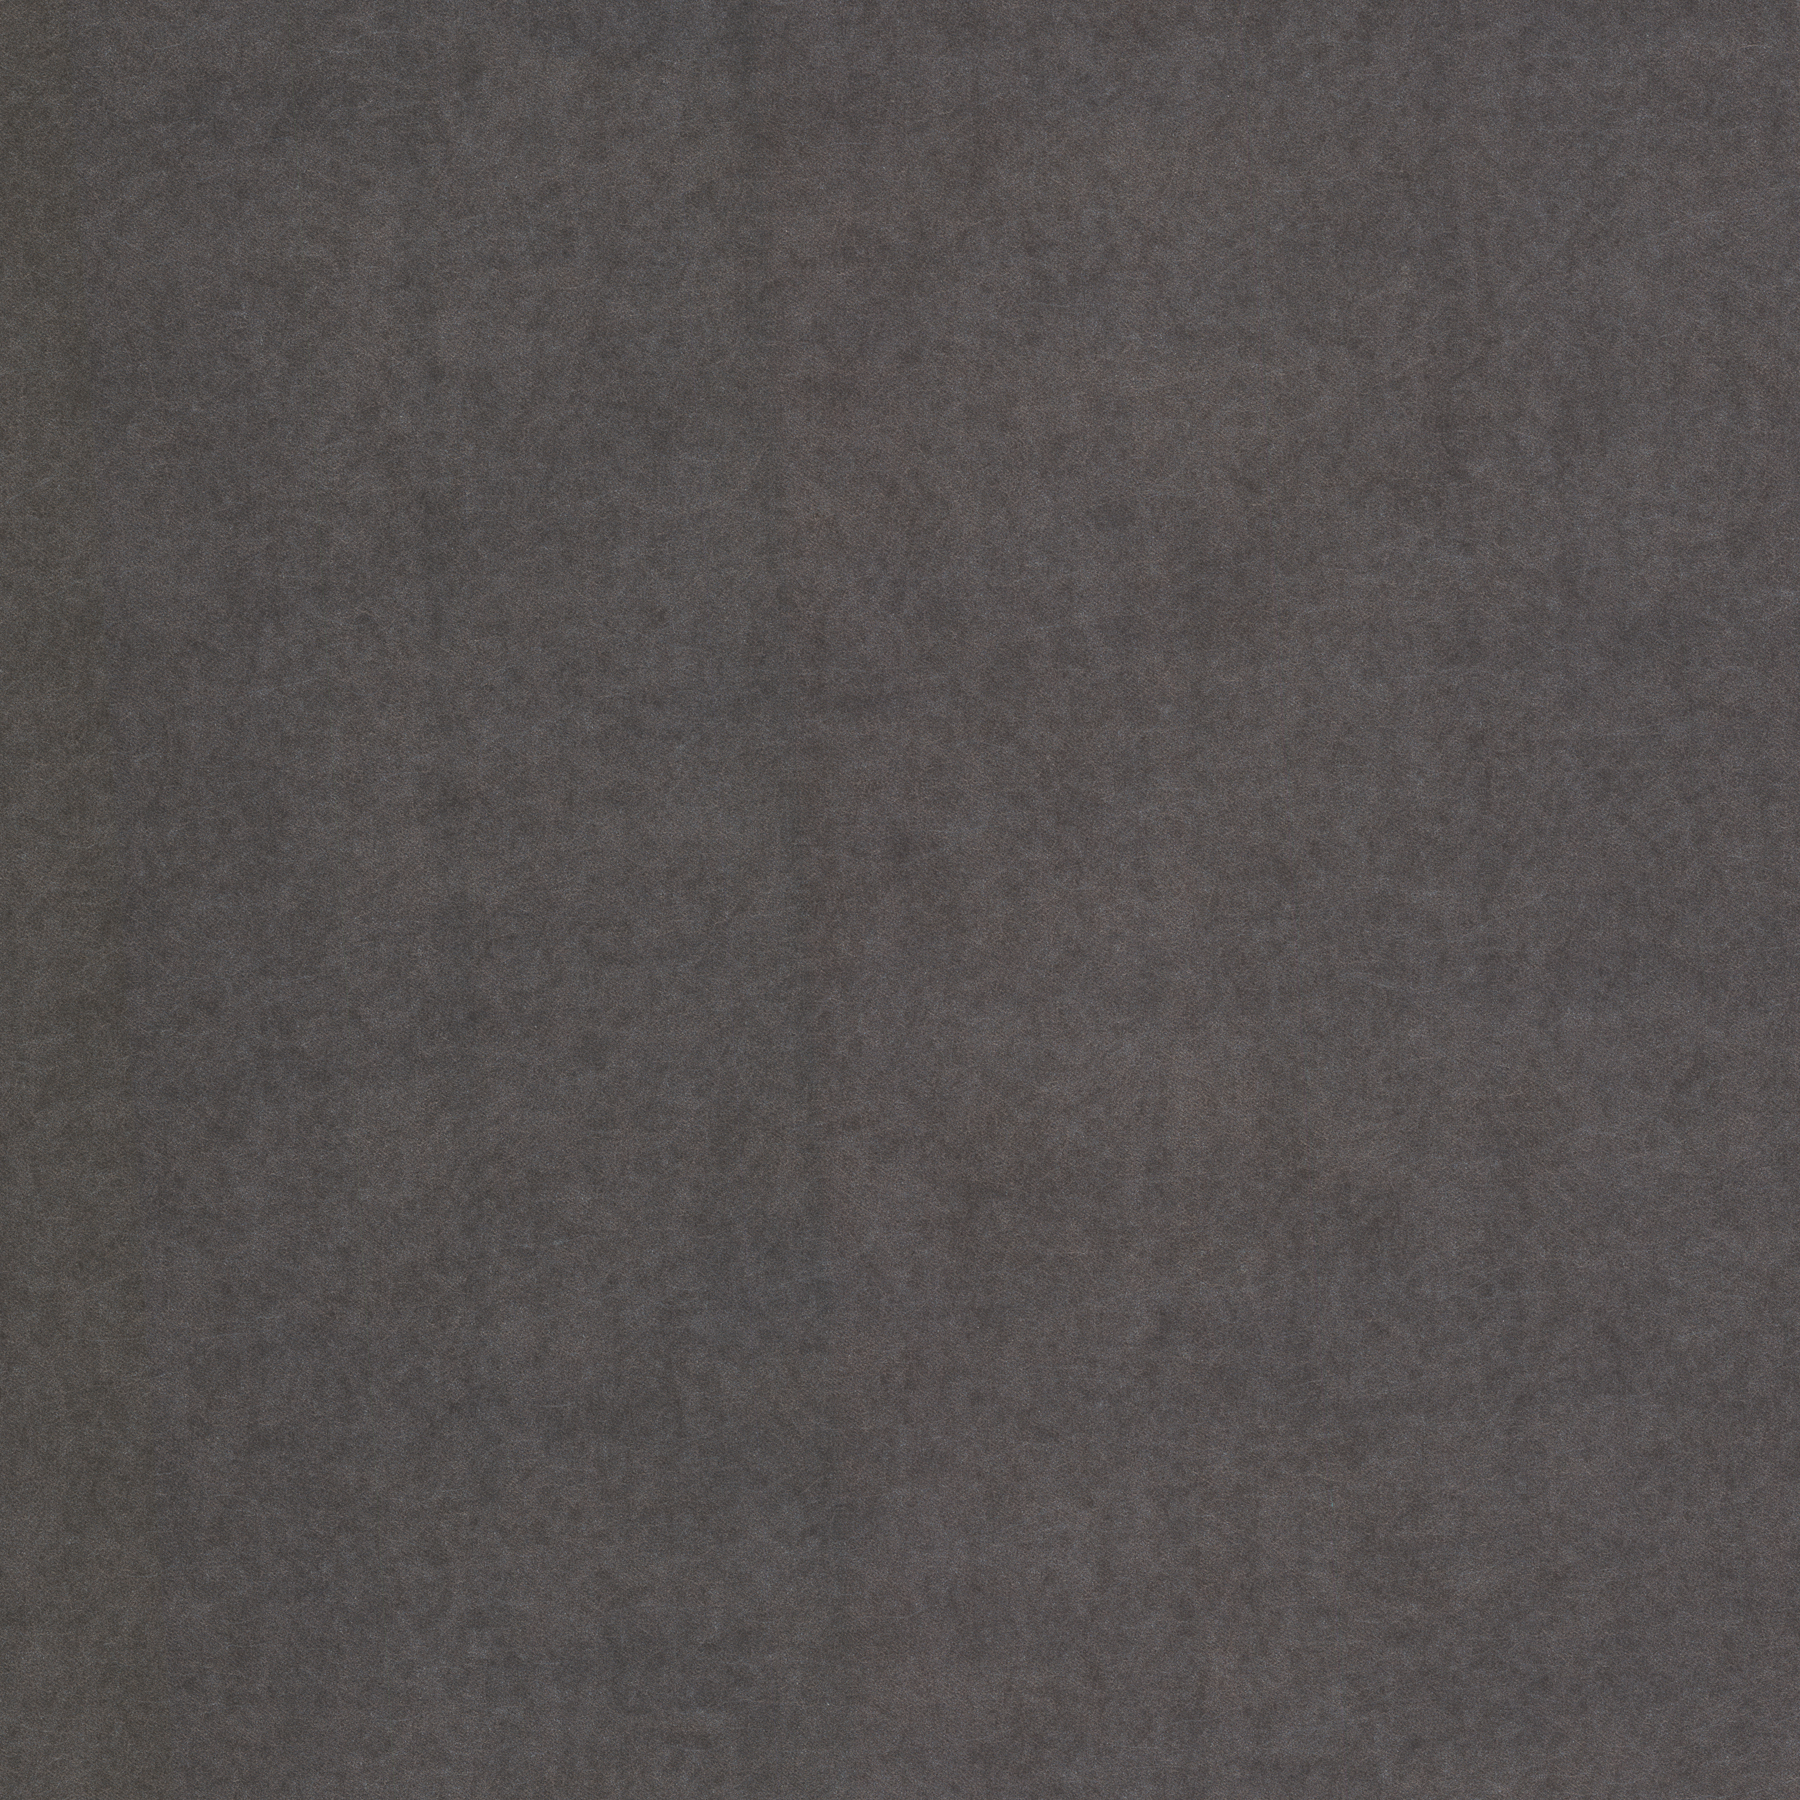 Picture of Black Mottled Texture Wallpaper